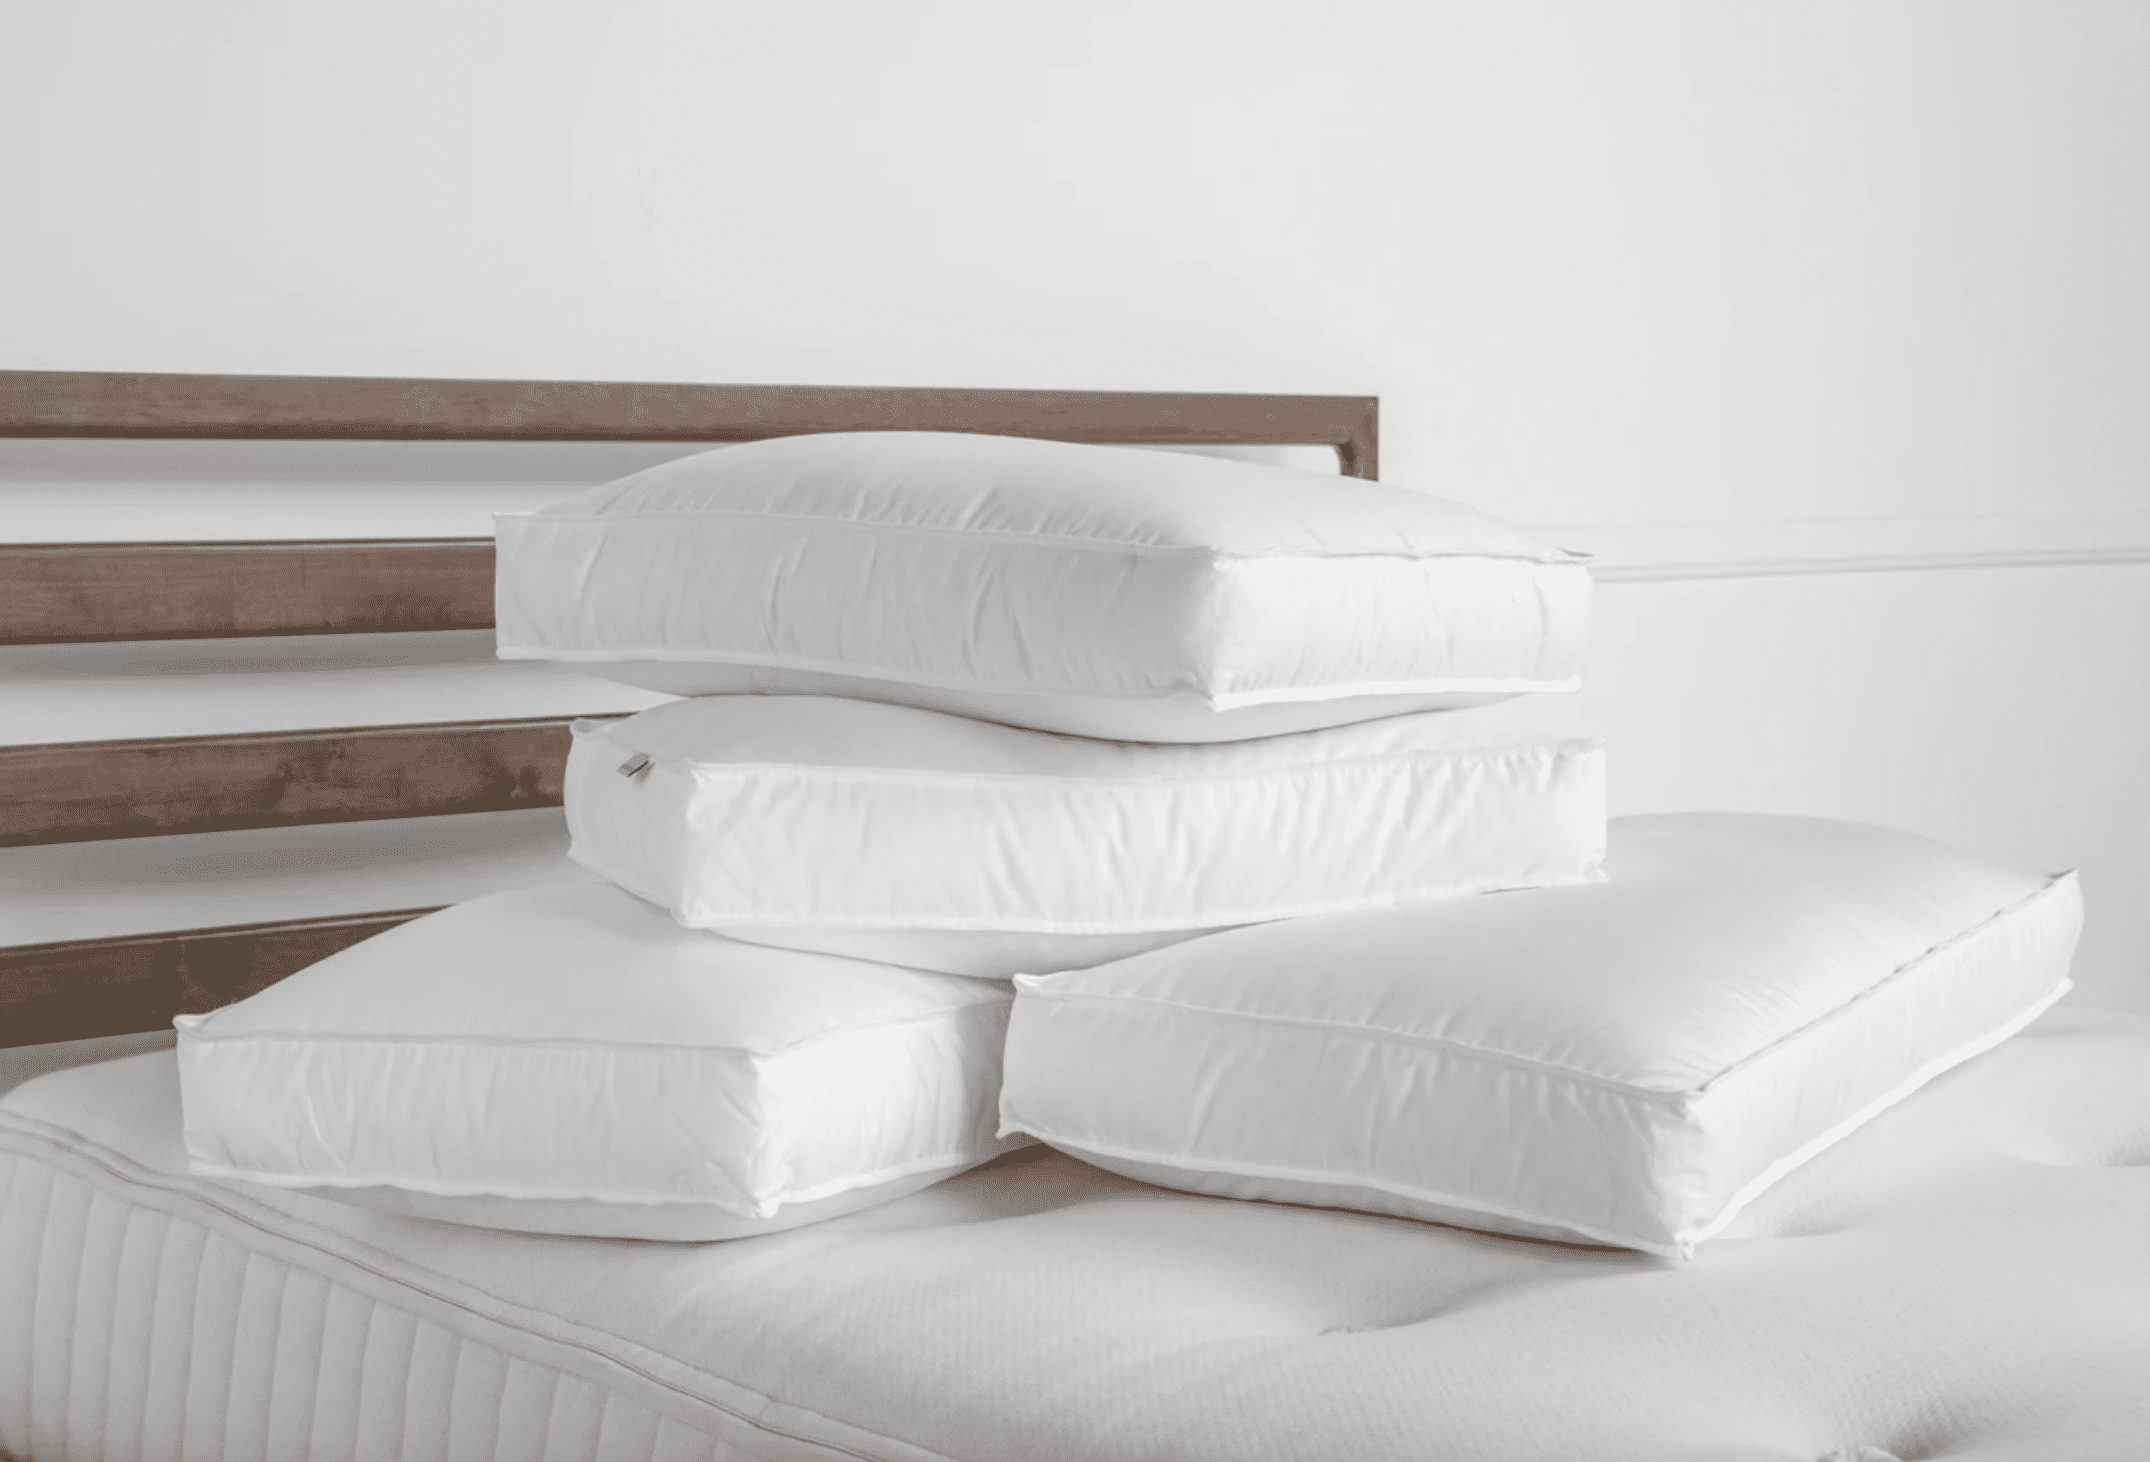 why i quit tithing 10 Of The Best Pillows For Side Sleepers According To Online Reviews